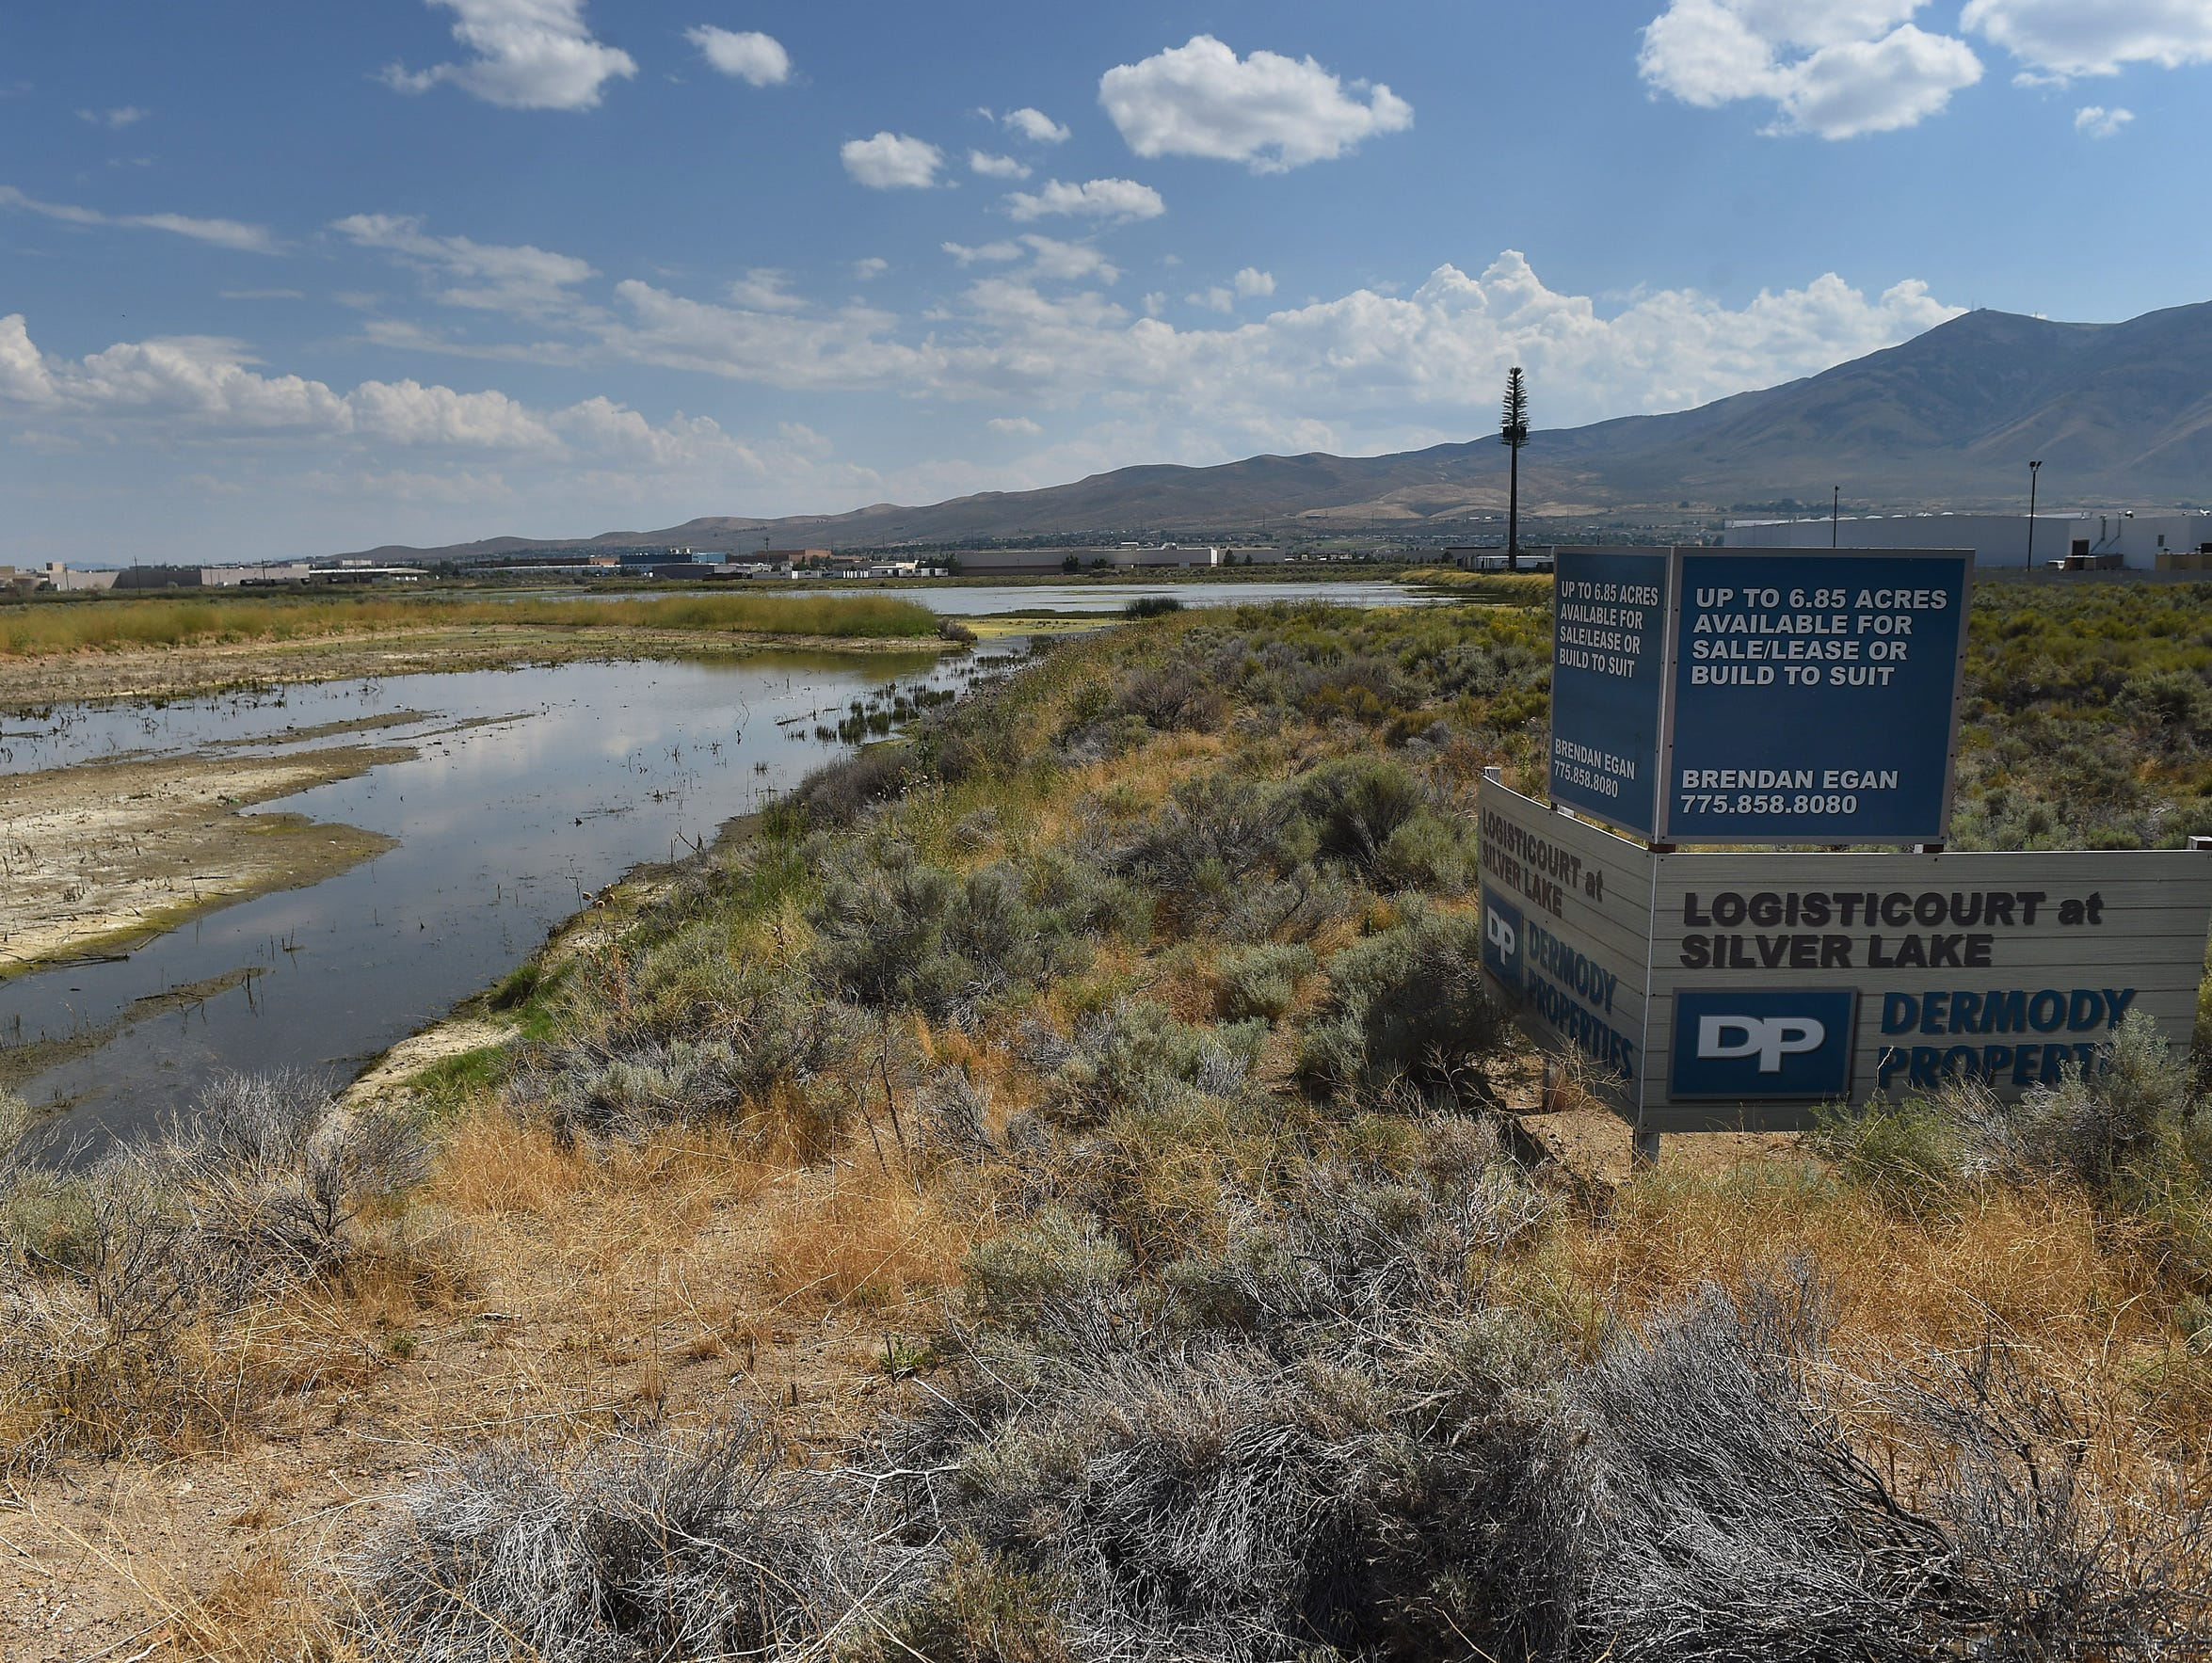 A sign advertising land for sale or lease is seen in